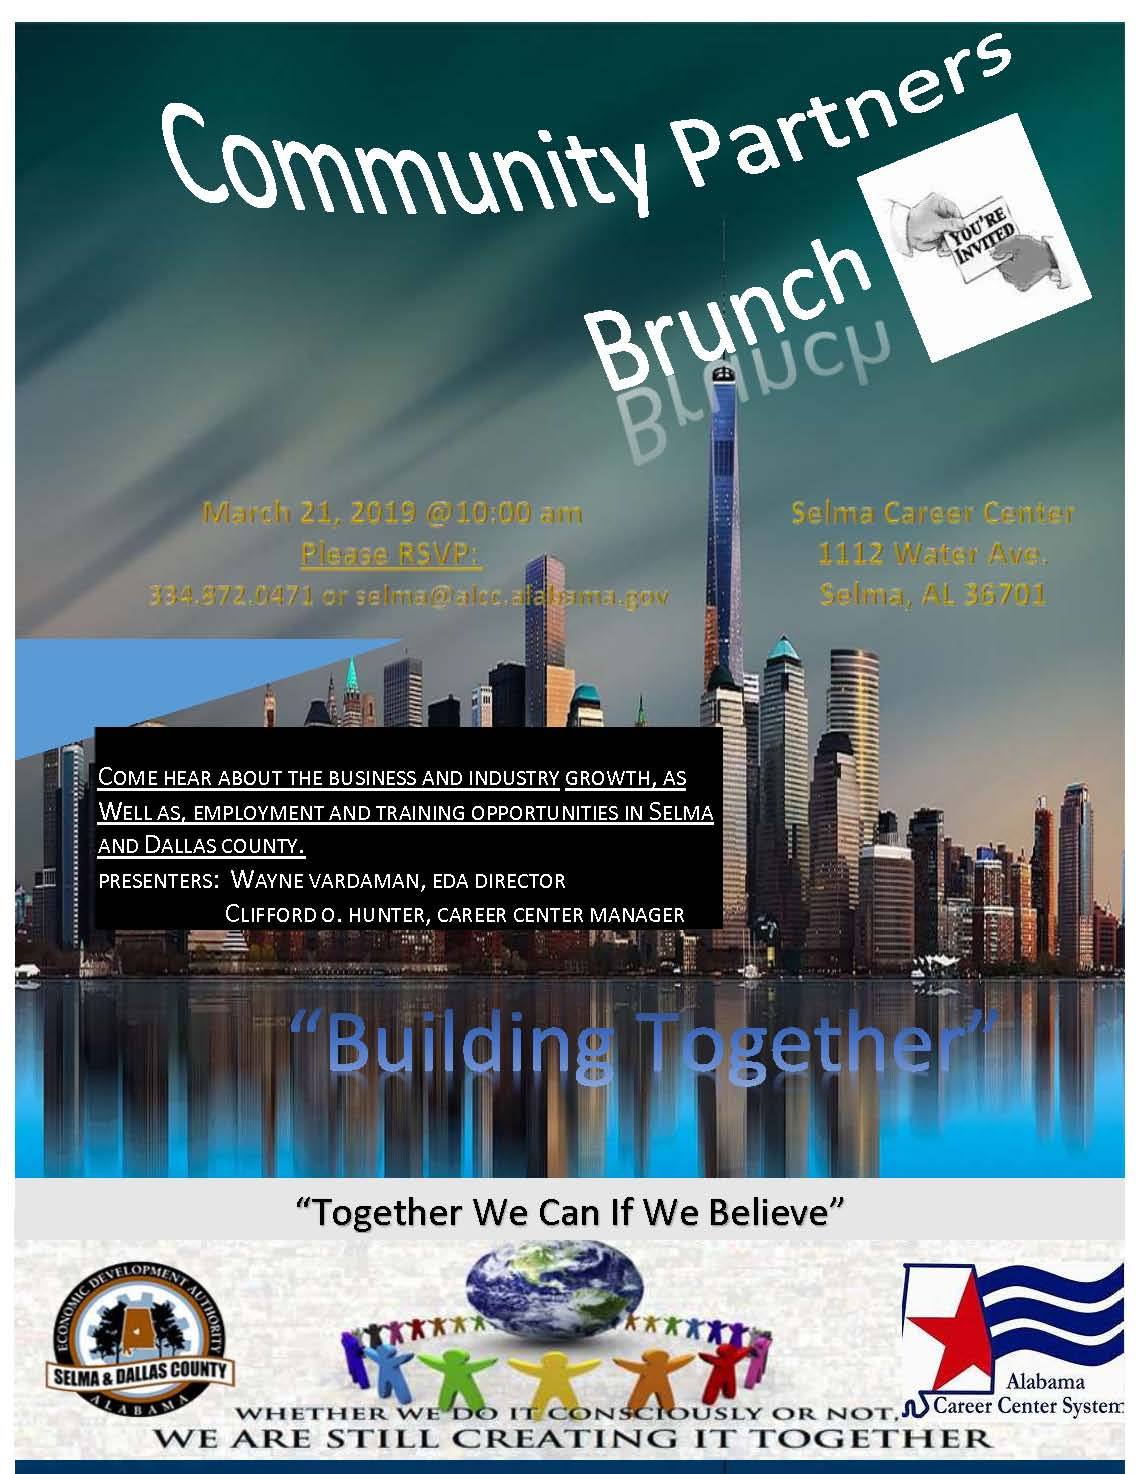 Community Partners Brunch